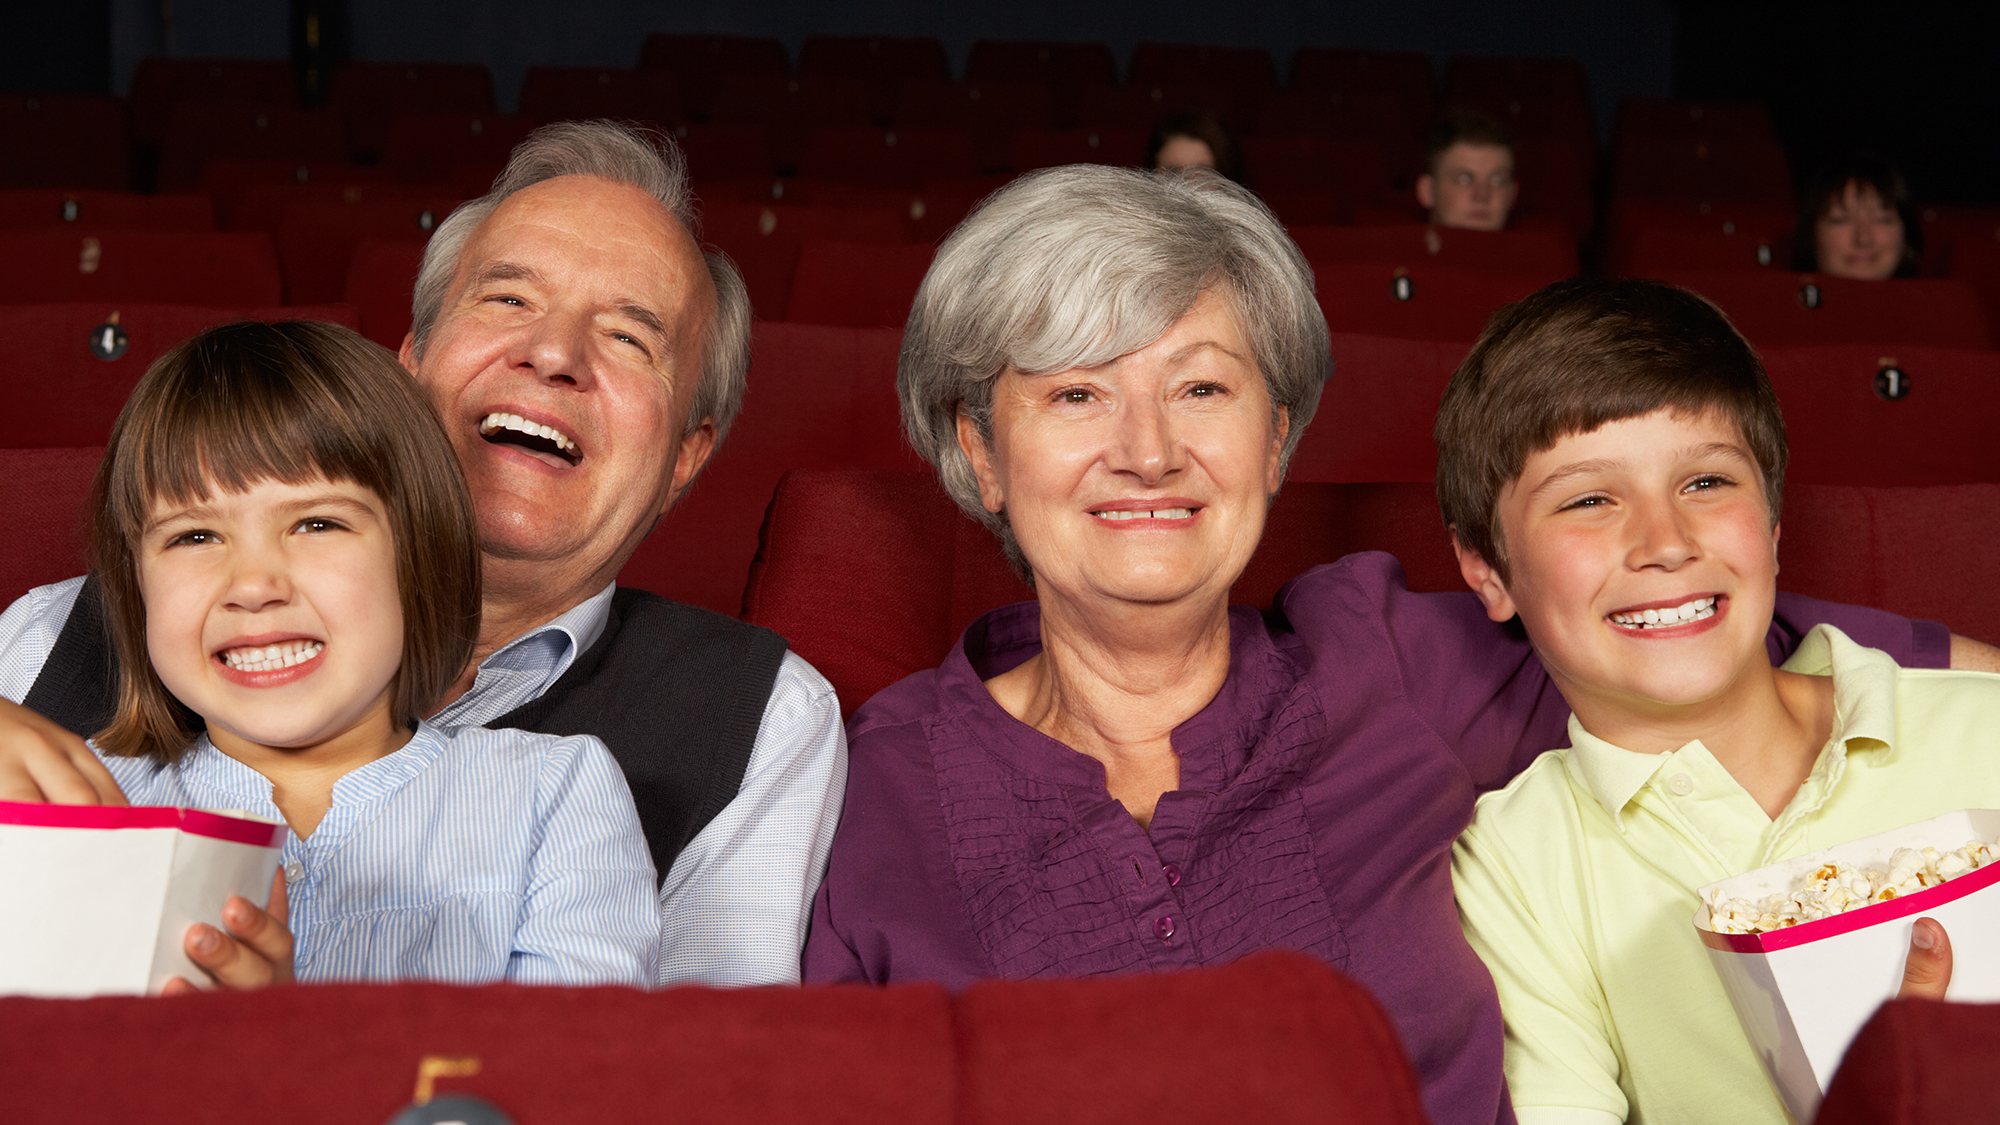 Get through the scary movie with your grandkids